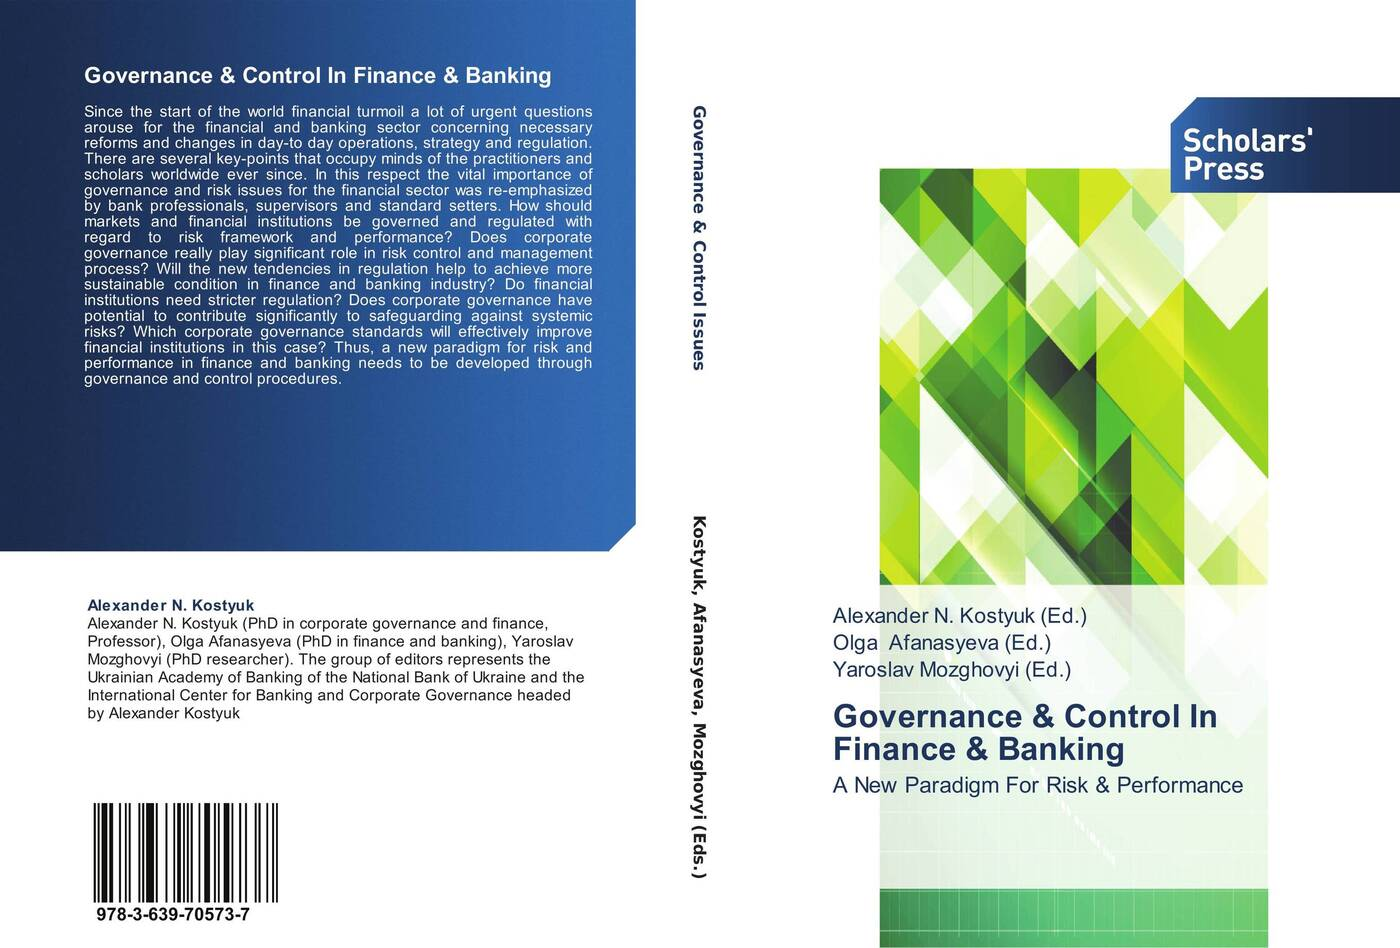 Alexander N. Kostyuk,Olga Afanasyeva and Yaroslav Mozghovyi Governance & Control In Finance & Banking banking reforms and agricultural finance in india